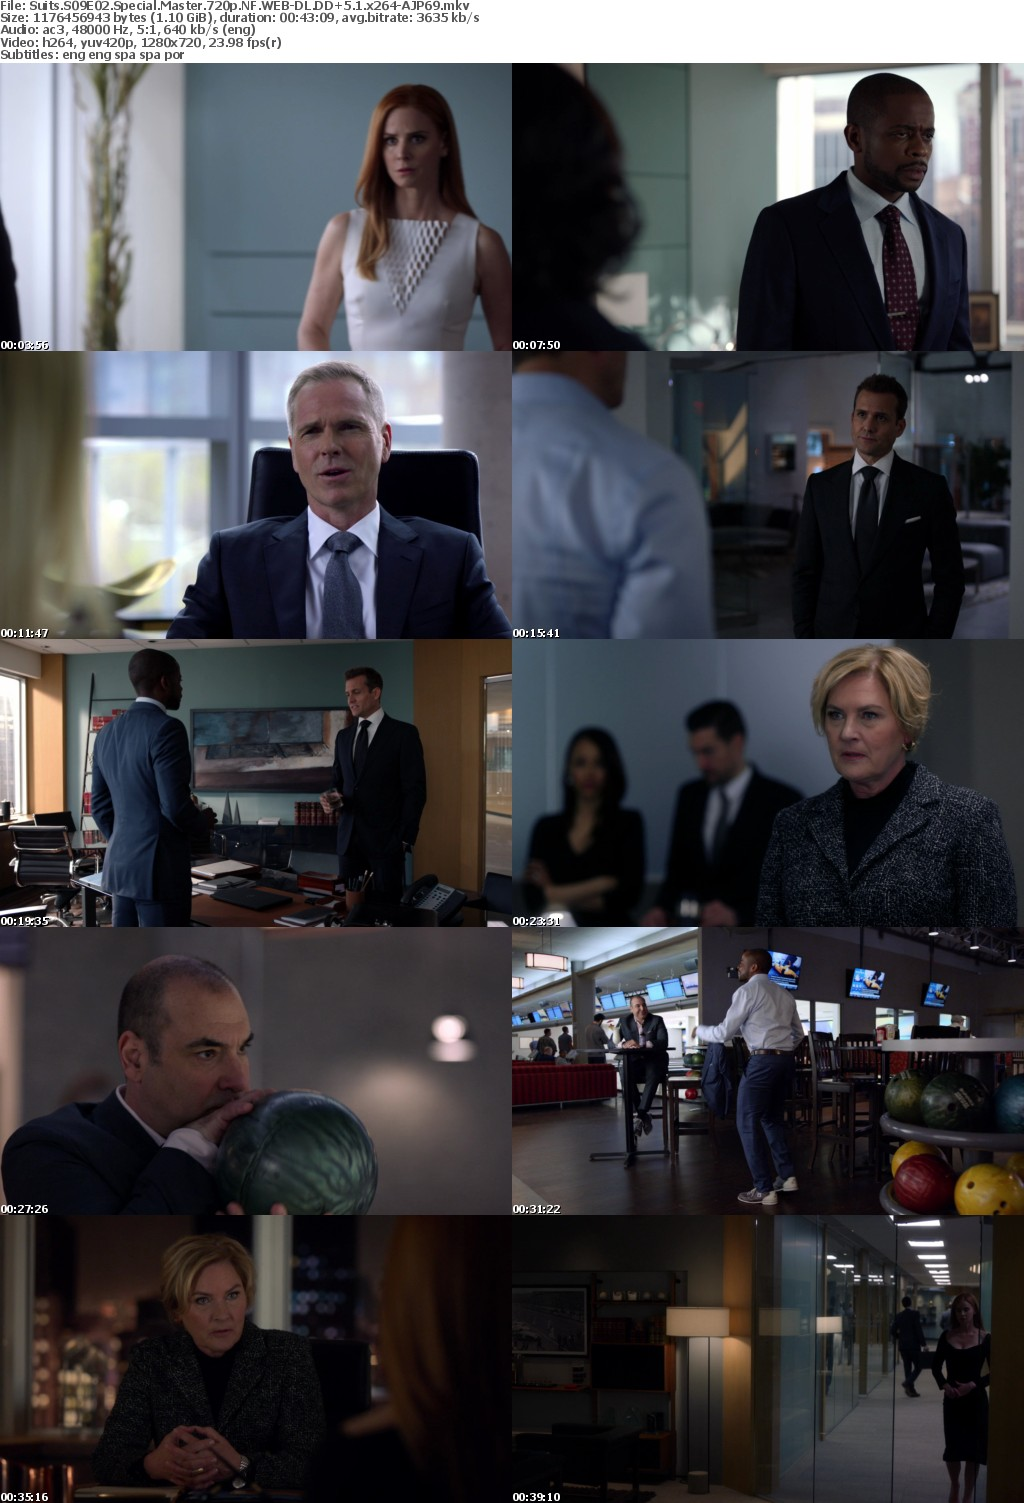 Suits S09E02 Special Master 720p NF WEB-DL DD+5 1 x264-AJP69